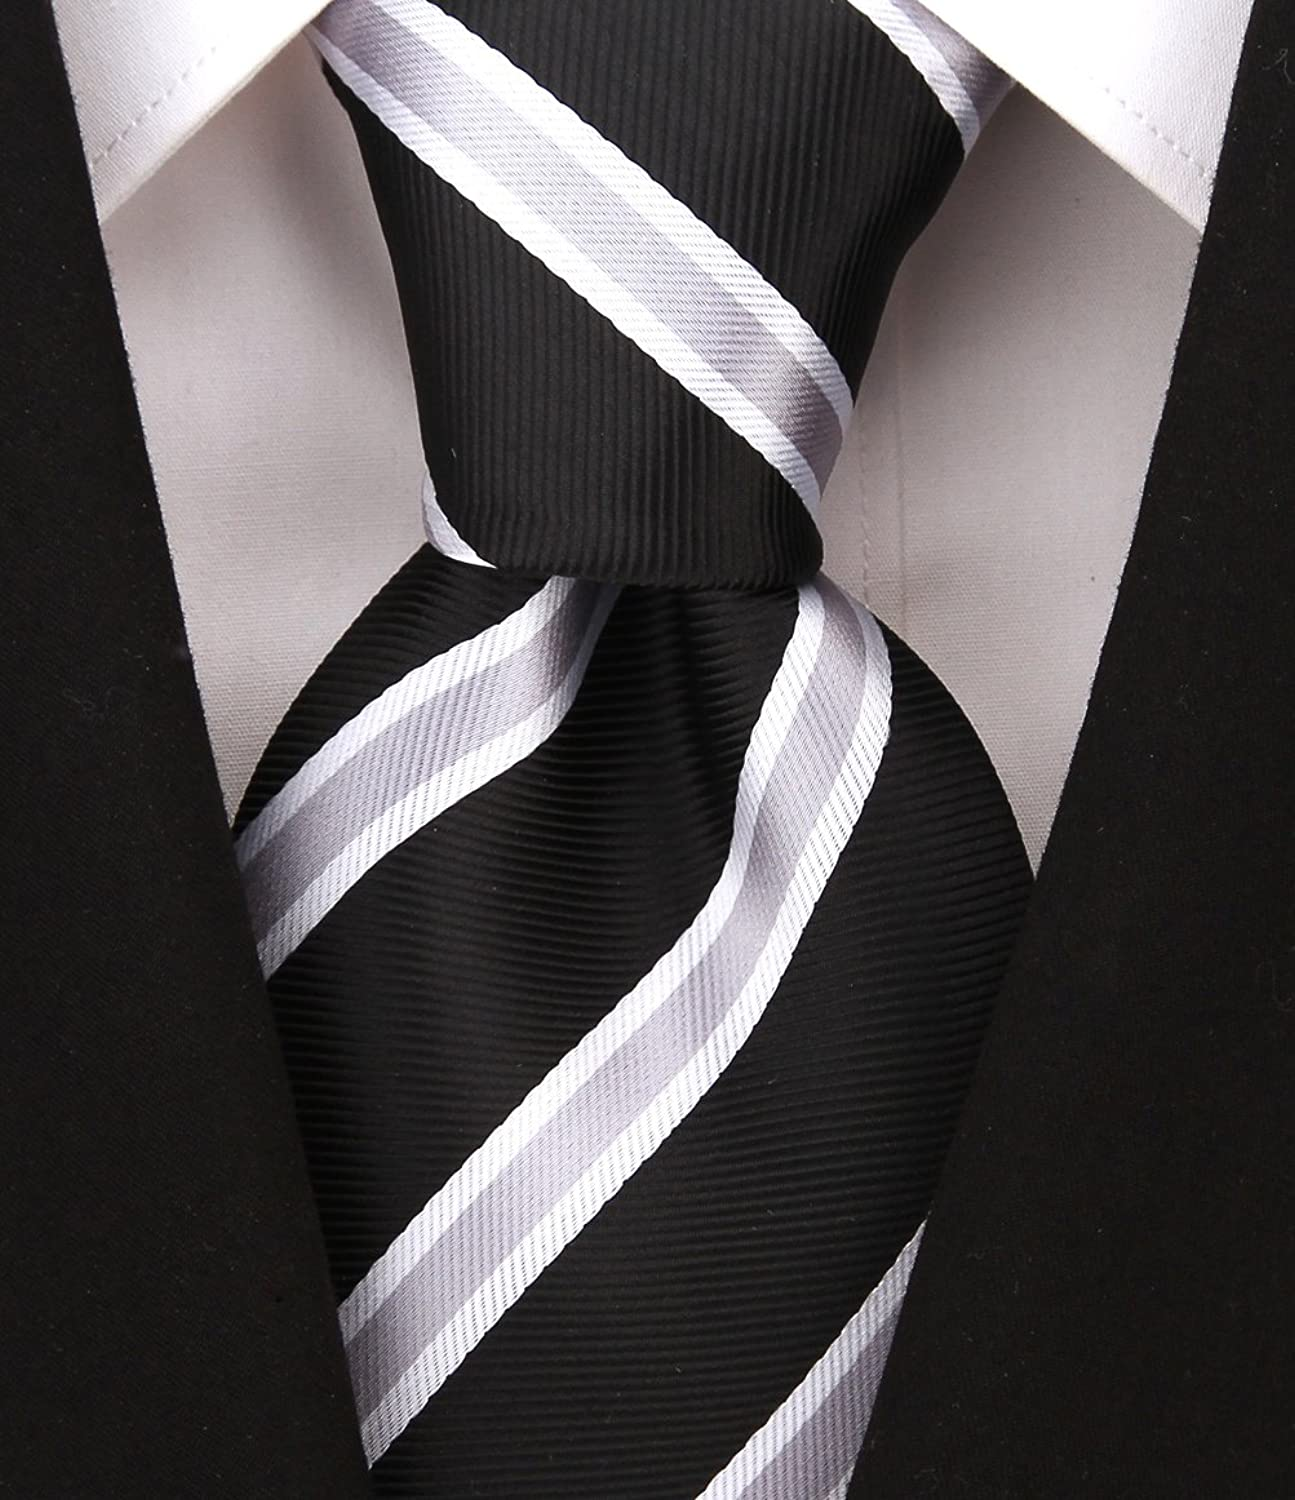 Edwardian Titanic Men's Formal Tuxedo Guide Scott Allan Mens Striped Necktie $11.99 AT vintagedancer.com